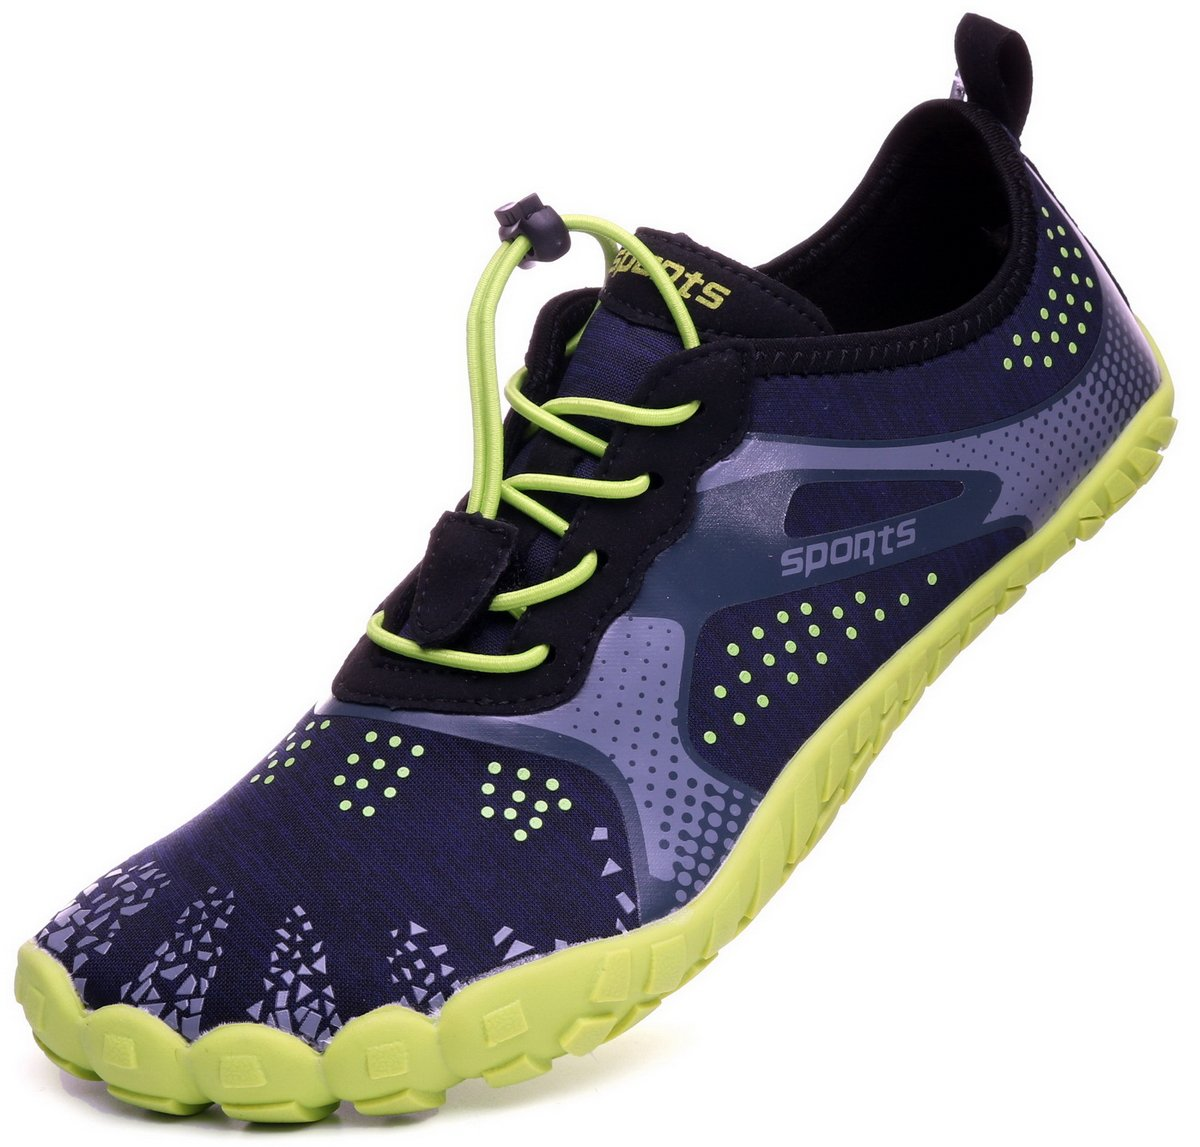 WHITIN Unisex Barefoot Shoes for Water Activities and Walking Jogging B07DVC3NH7 13 US Women's / 11 US Men's|Green